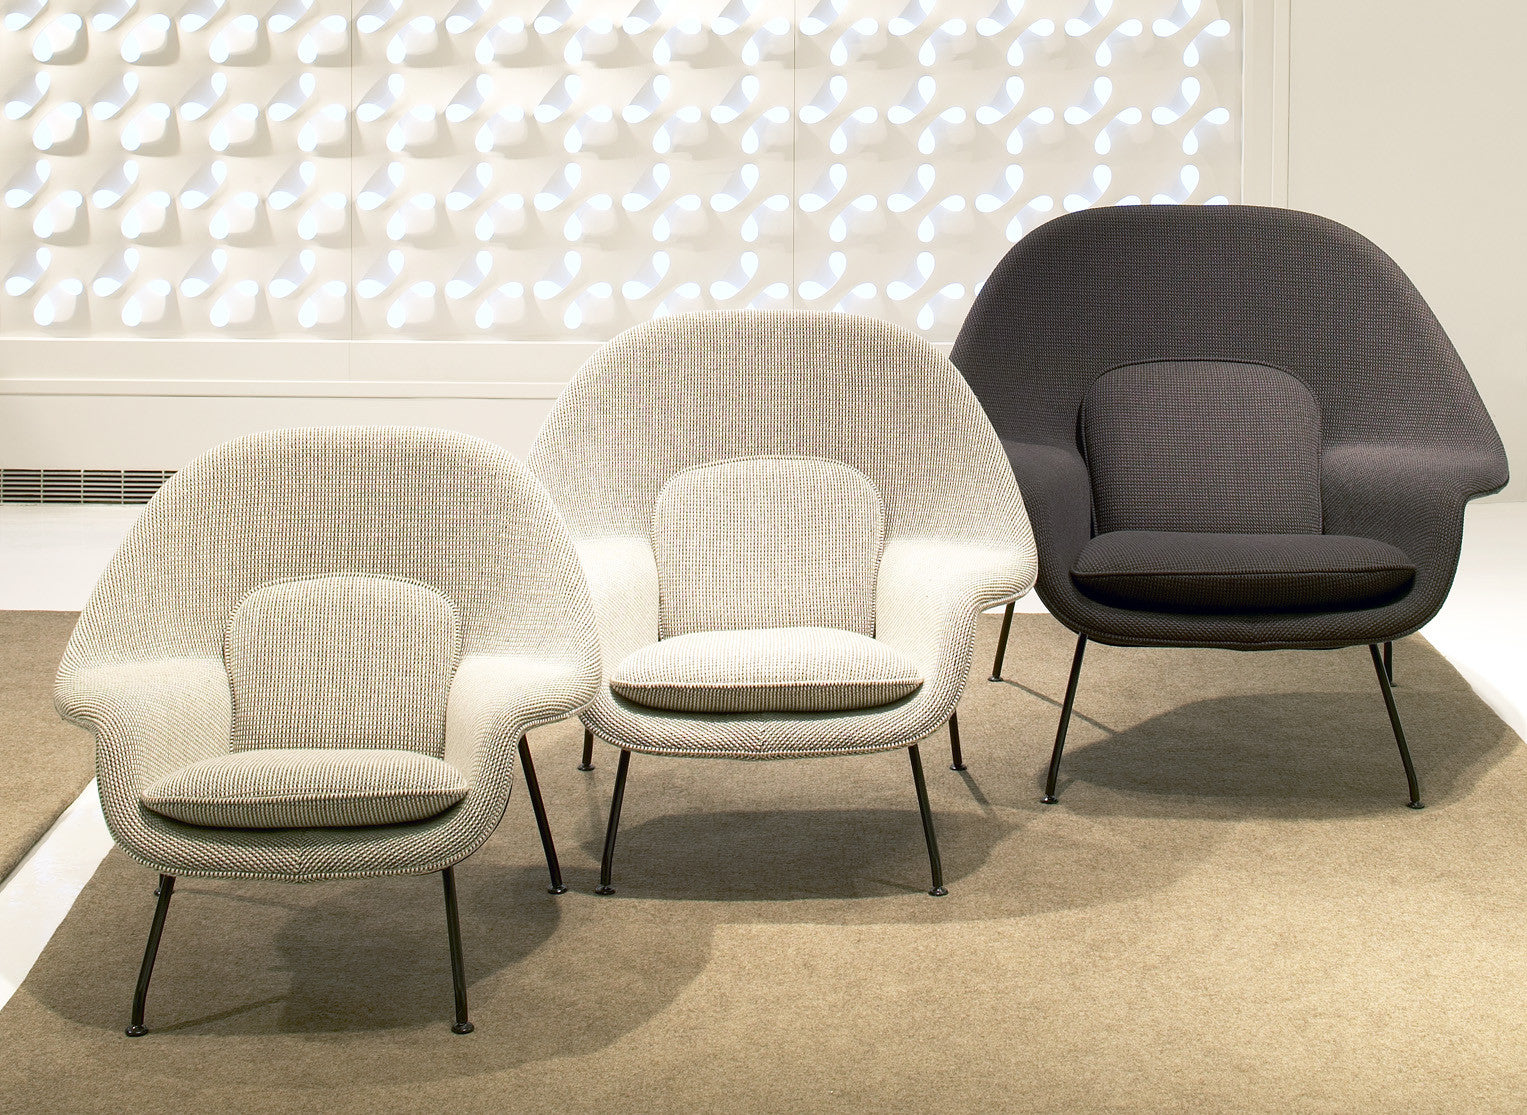 Saarinen Womb Chair Couch Potato Company